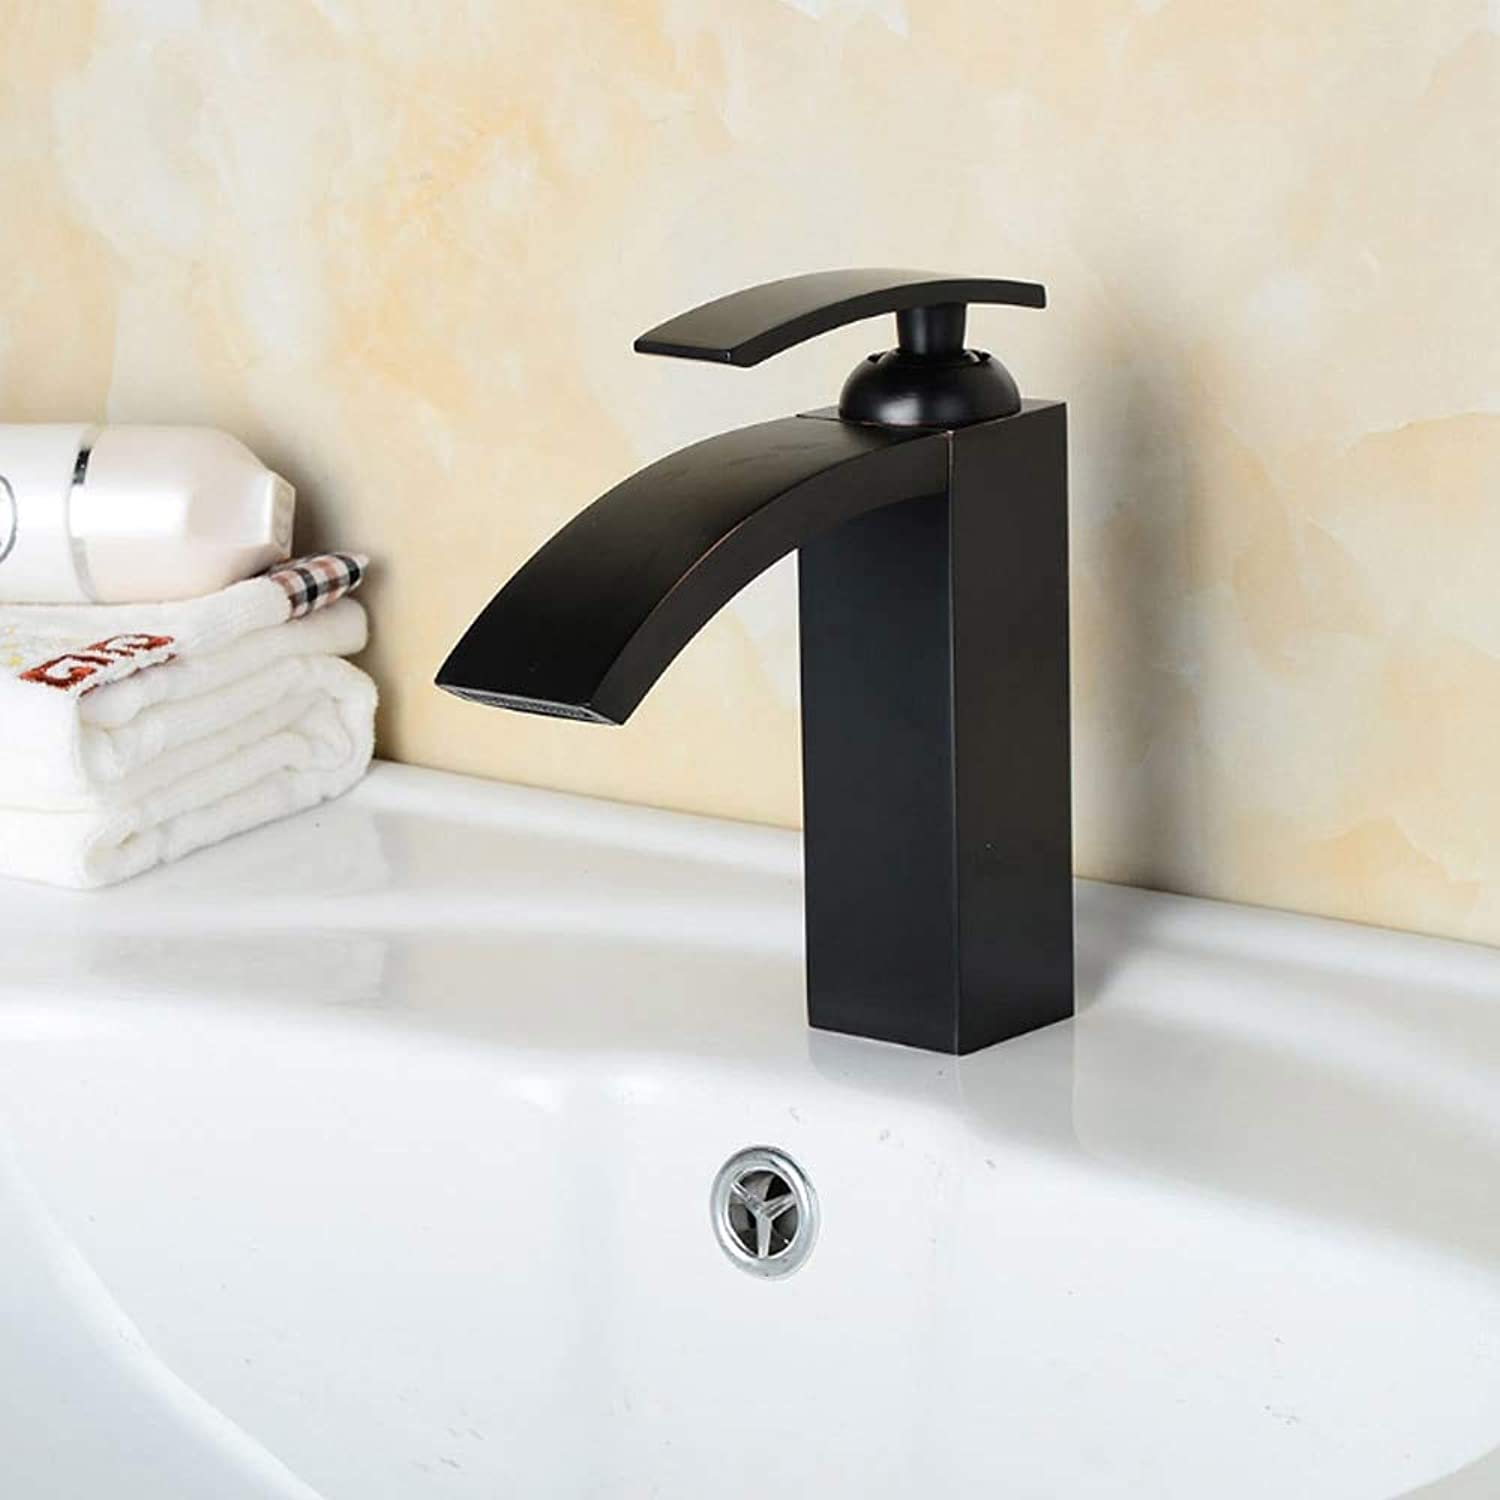 Decorry Black Antiquing Brass Bathroom Faucets Deck Mount Vanity Vessel Sinks Mixer Basin Faucet Tap